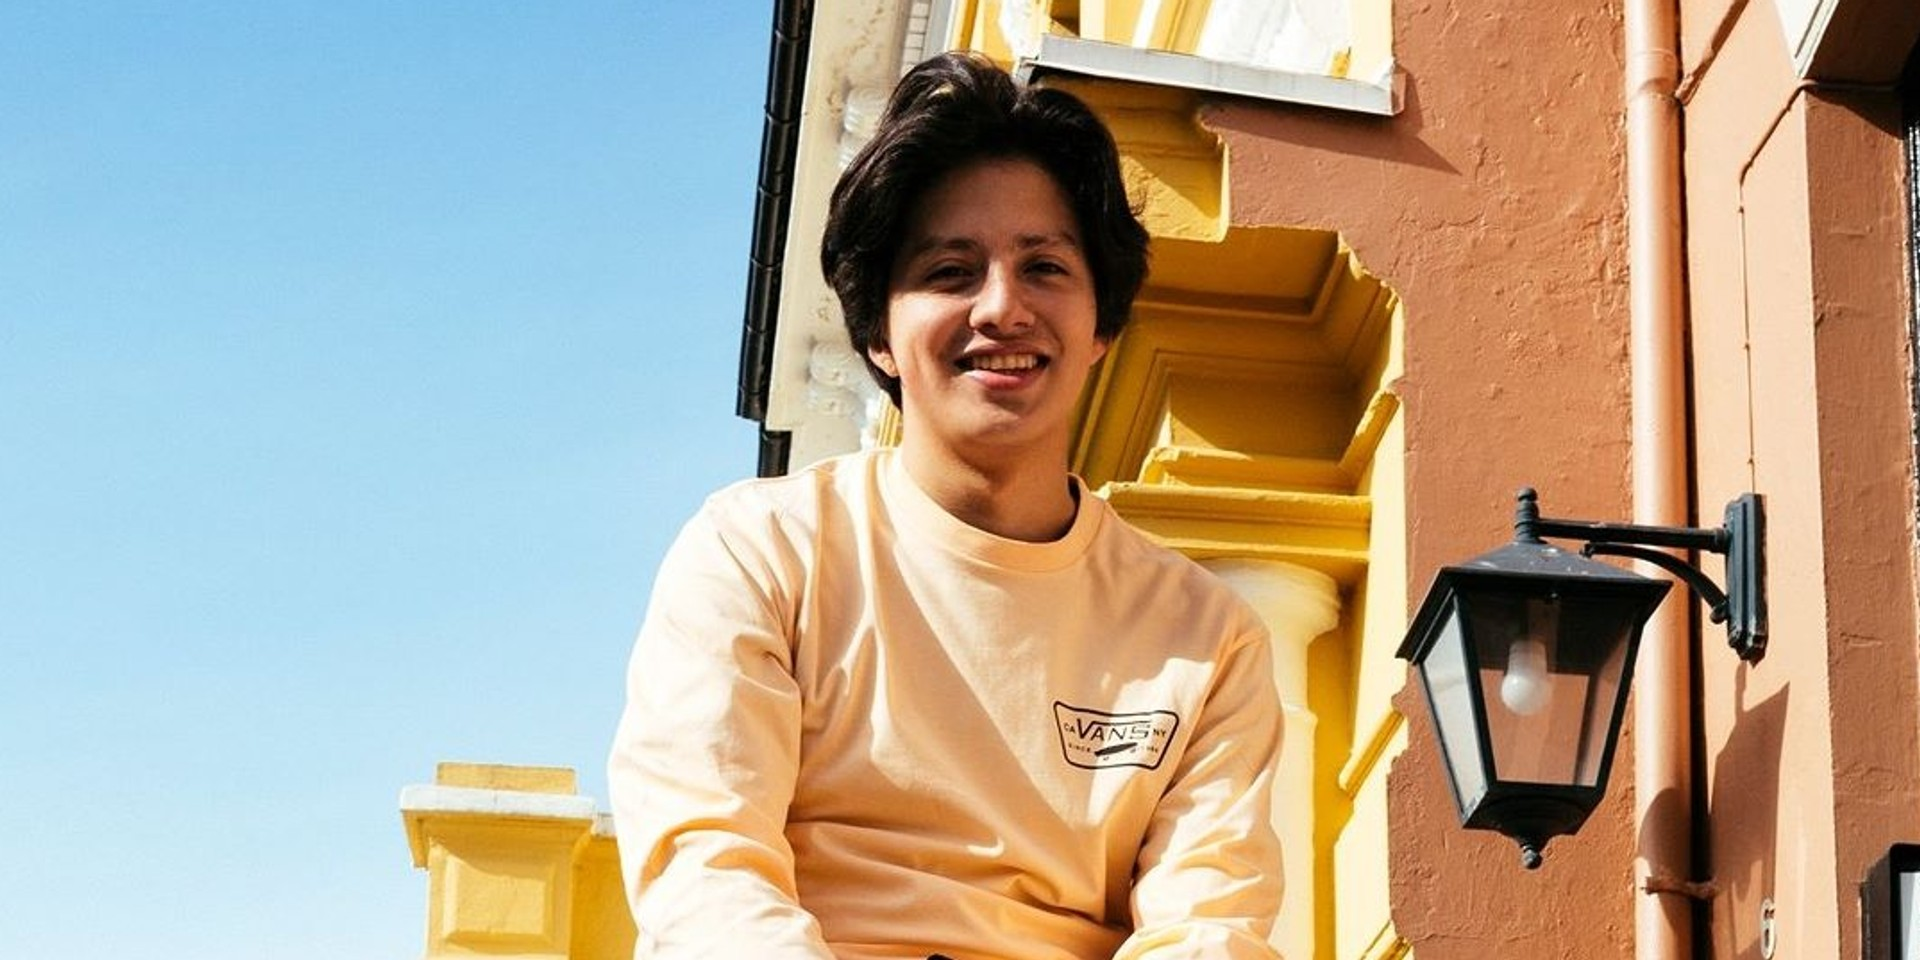 Ticketing details released for boy pablo's show in Singapore